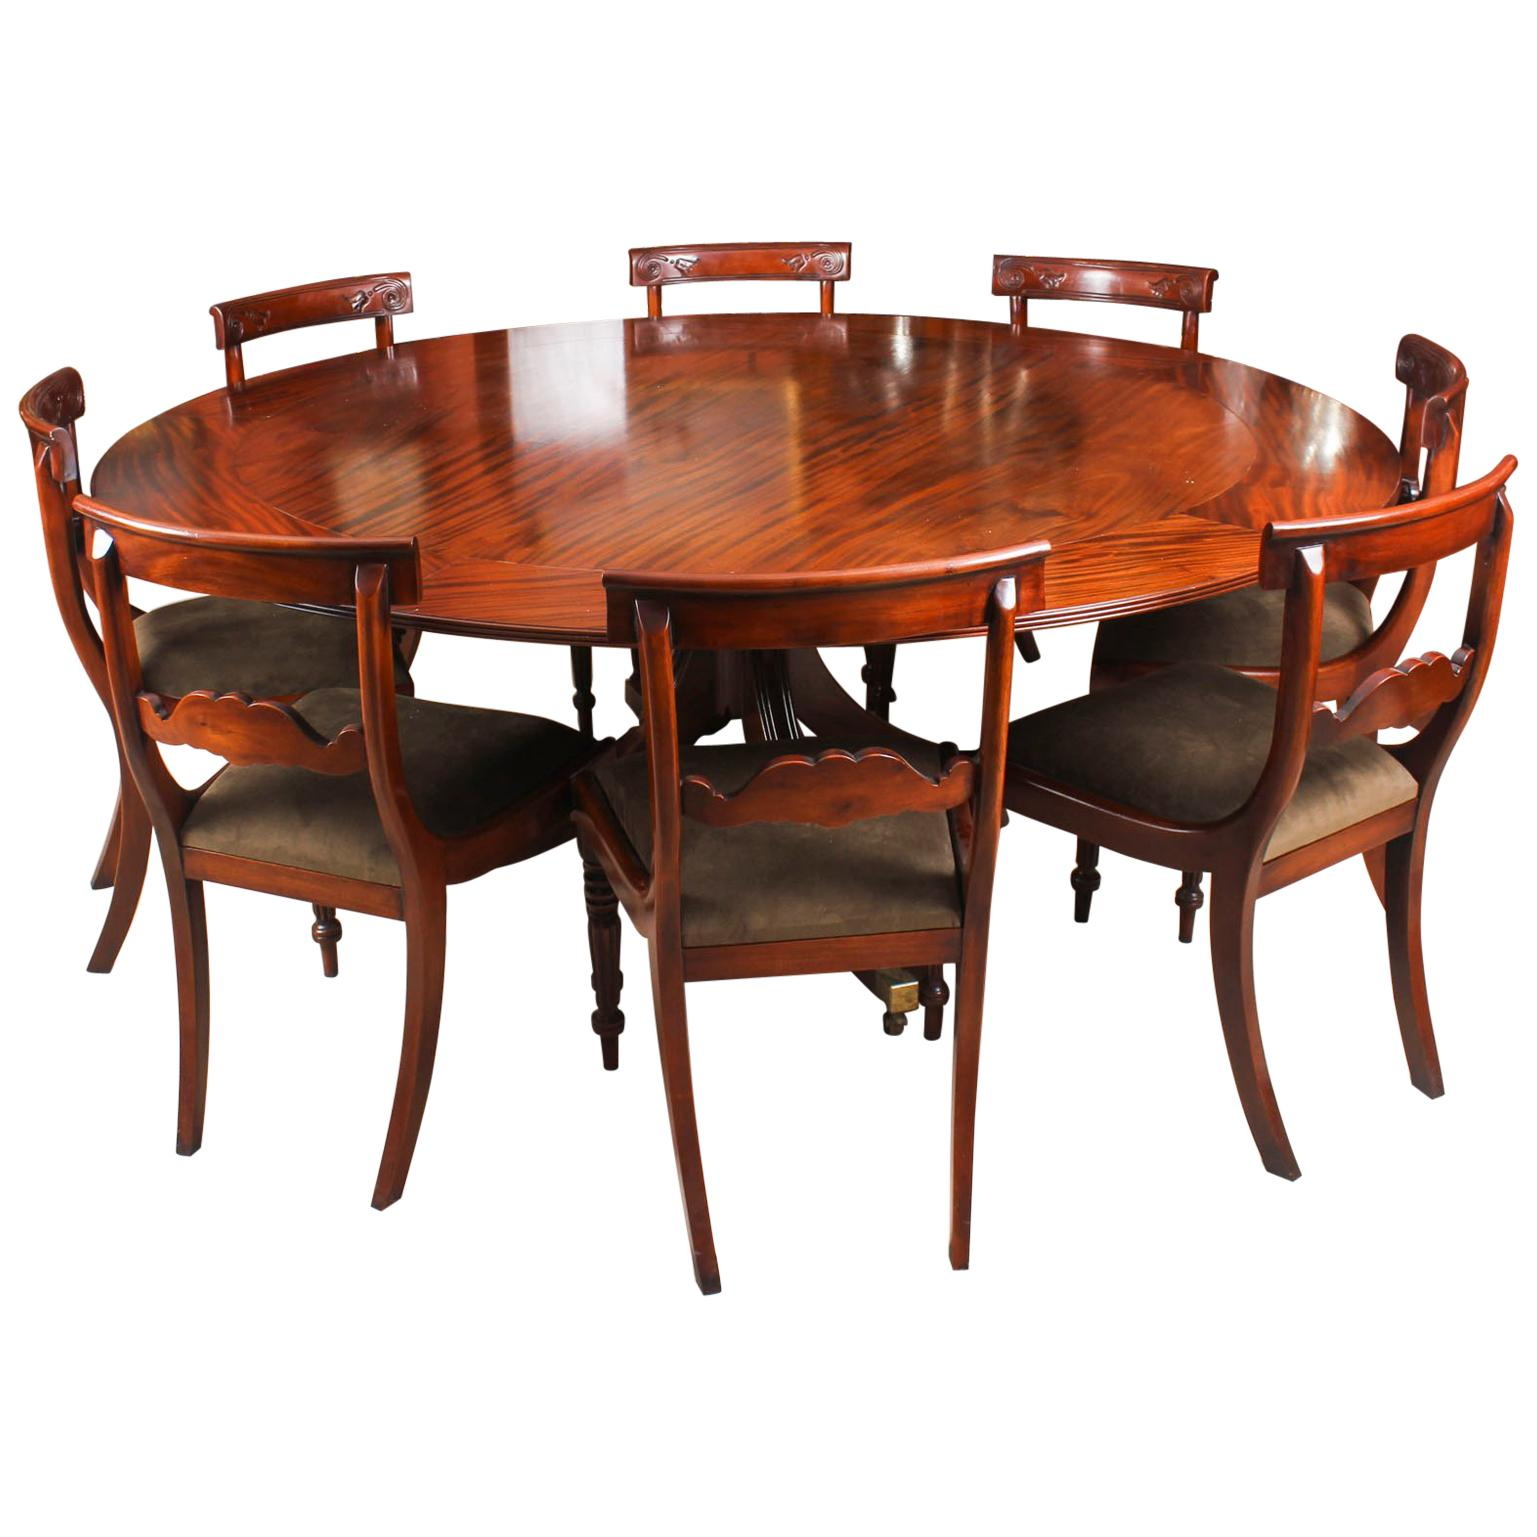 8 Chair Dining Set Vintage Mahogany Jupe Dining Table Leaf Cabinet And 8 Chairs